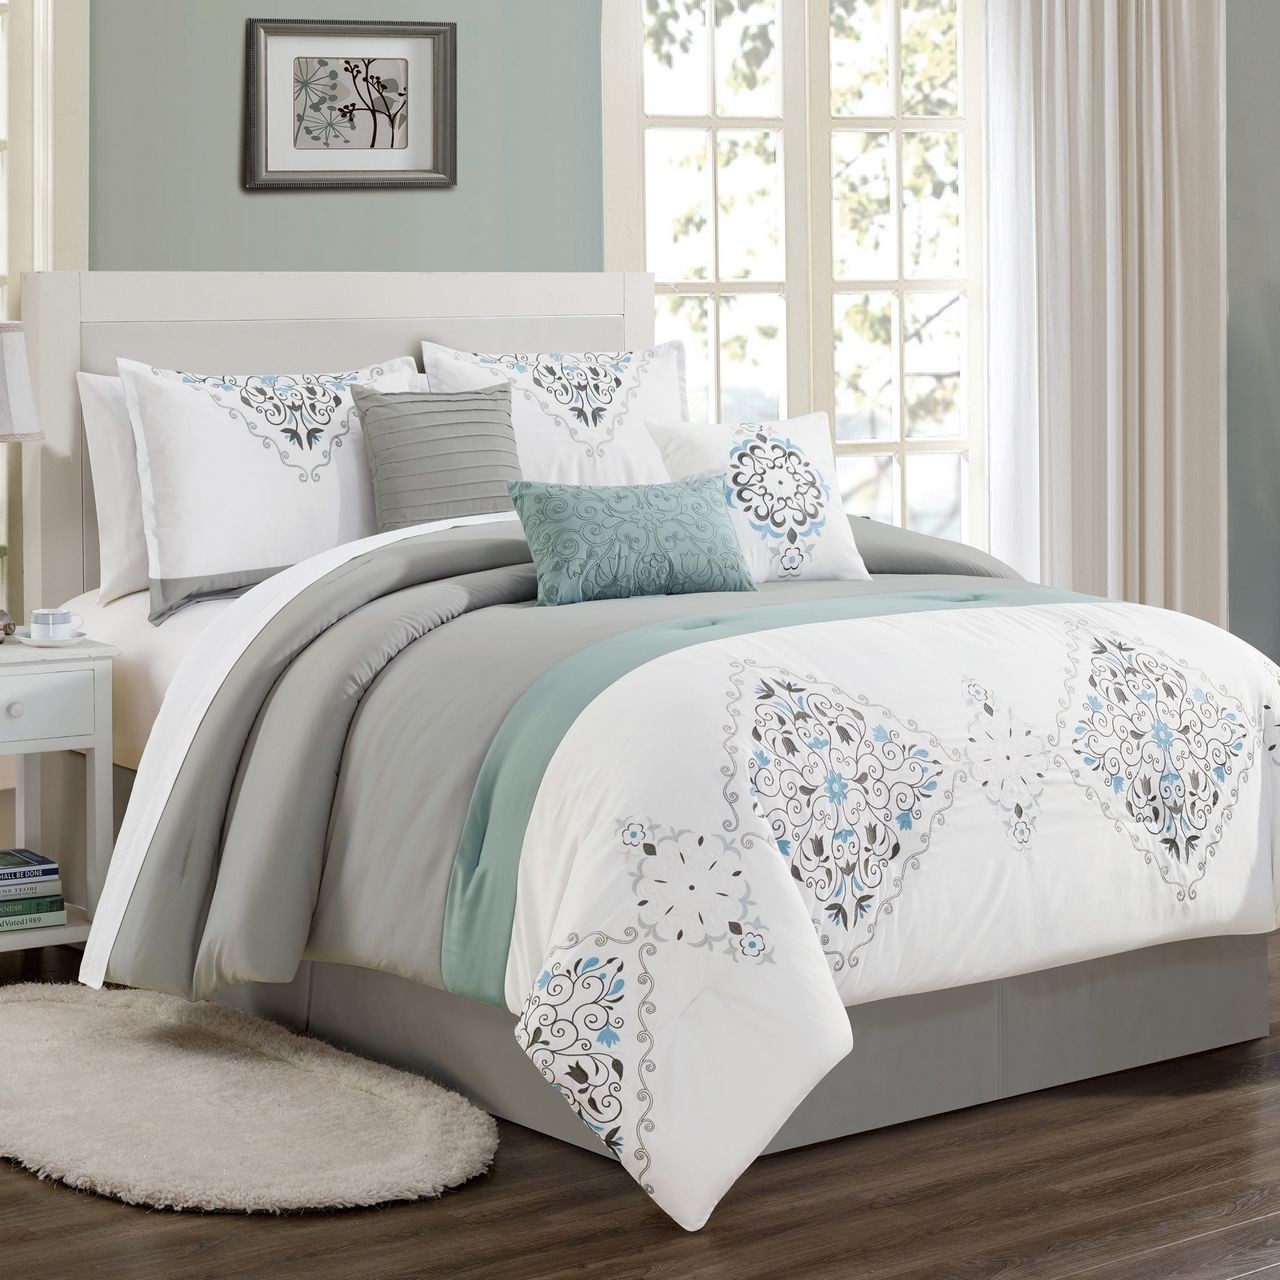 Gray And White Bedroom Furniture: 7 Piece Even Gray/White/Blue Comforter Set